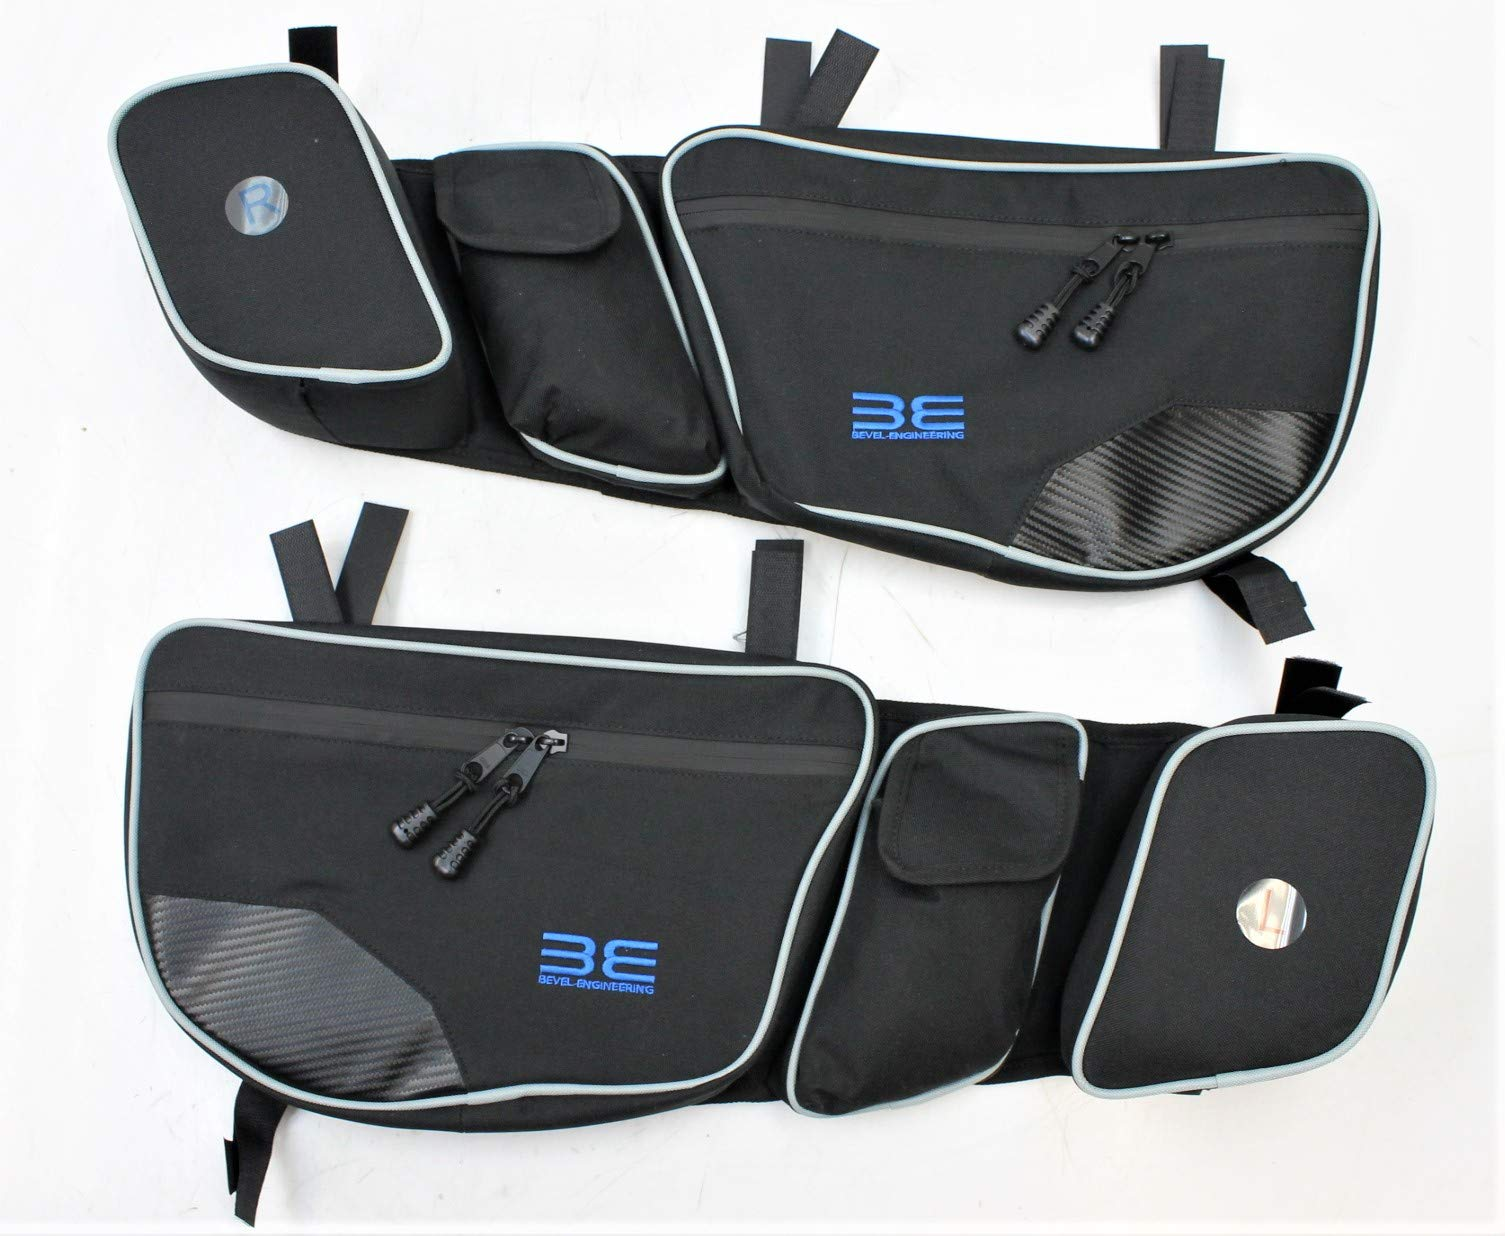 Bevel Engineering Door Bags for Can Am Maverick X3 2017 2018 Passenger And Driver Side Storage Bag with Knee Protection by Bevel Engineering